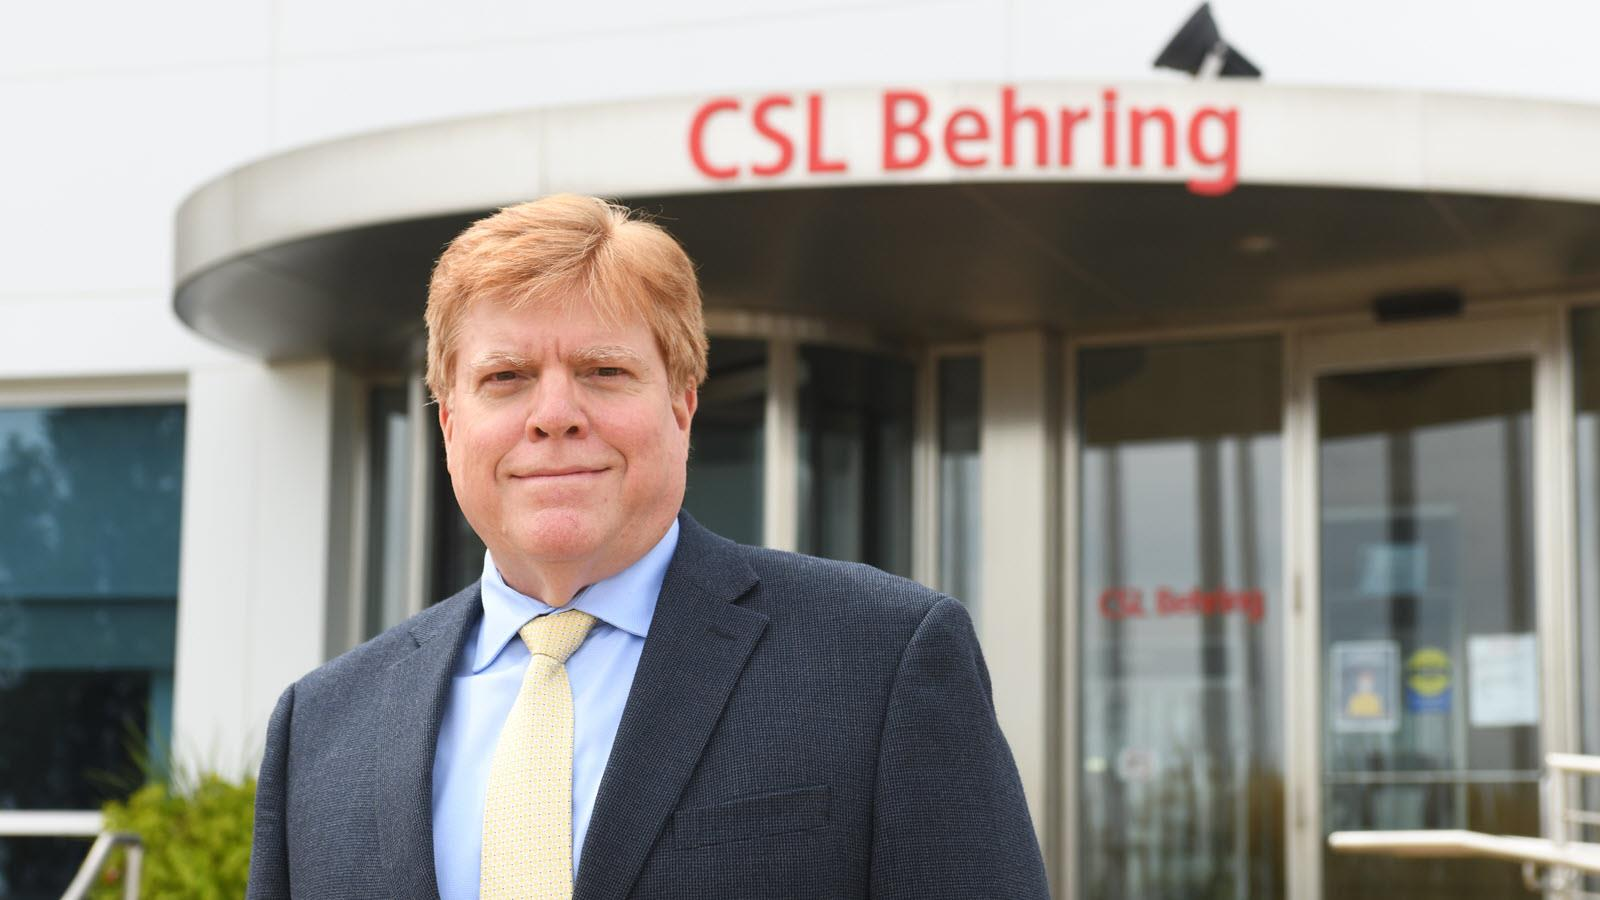 CSL Behring Kankakee GM Jose Gonzales outside the building - credit Kankakee Daily Journal